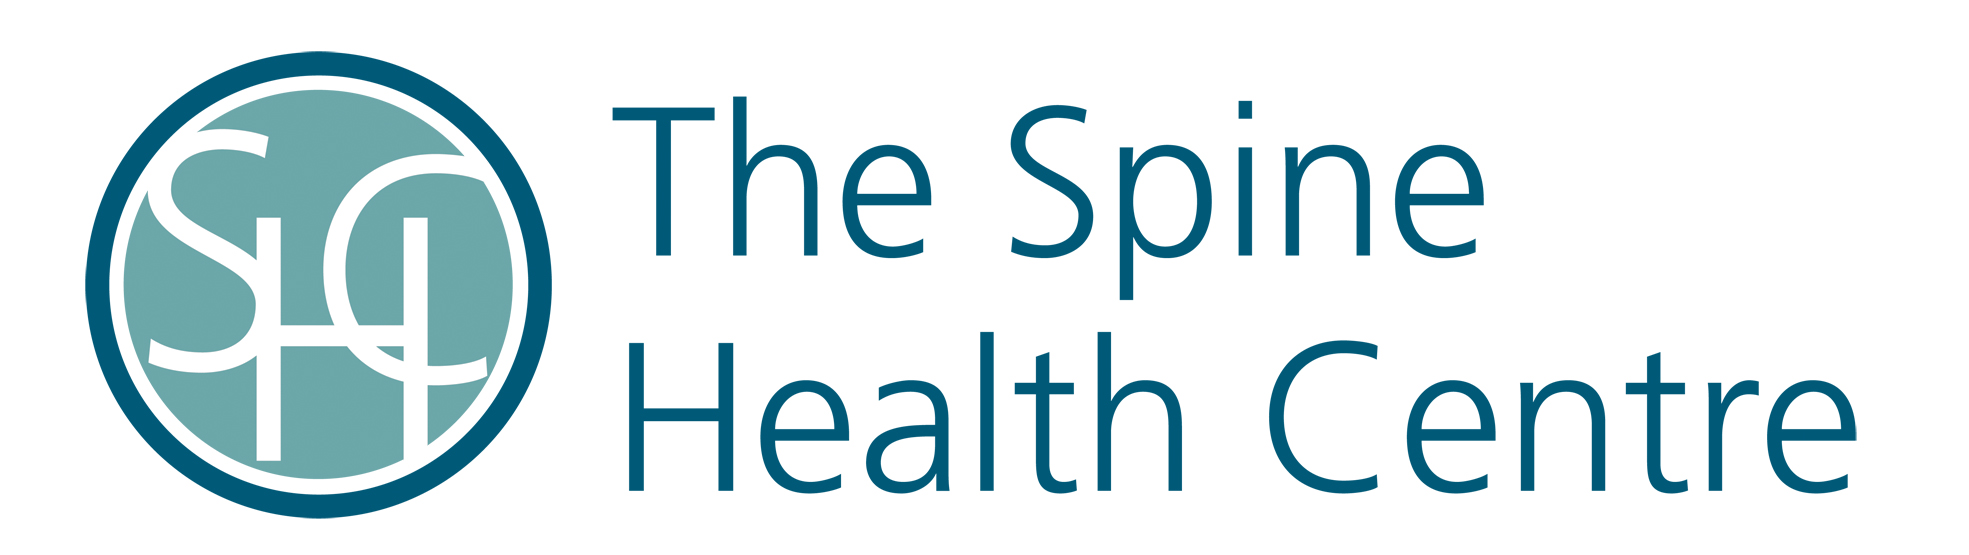 Spine & Joint Health Centre Basingstoke Logo